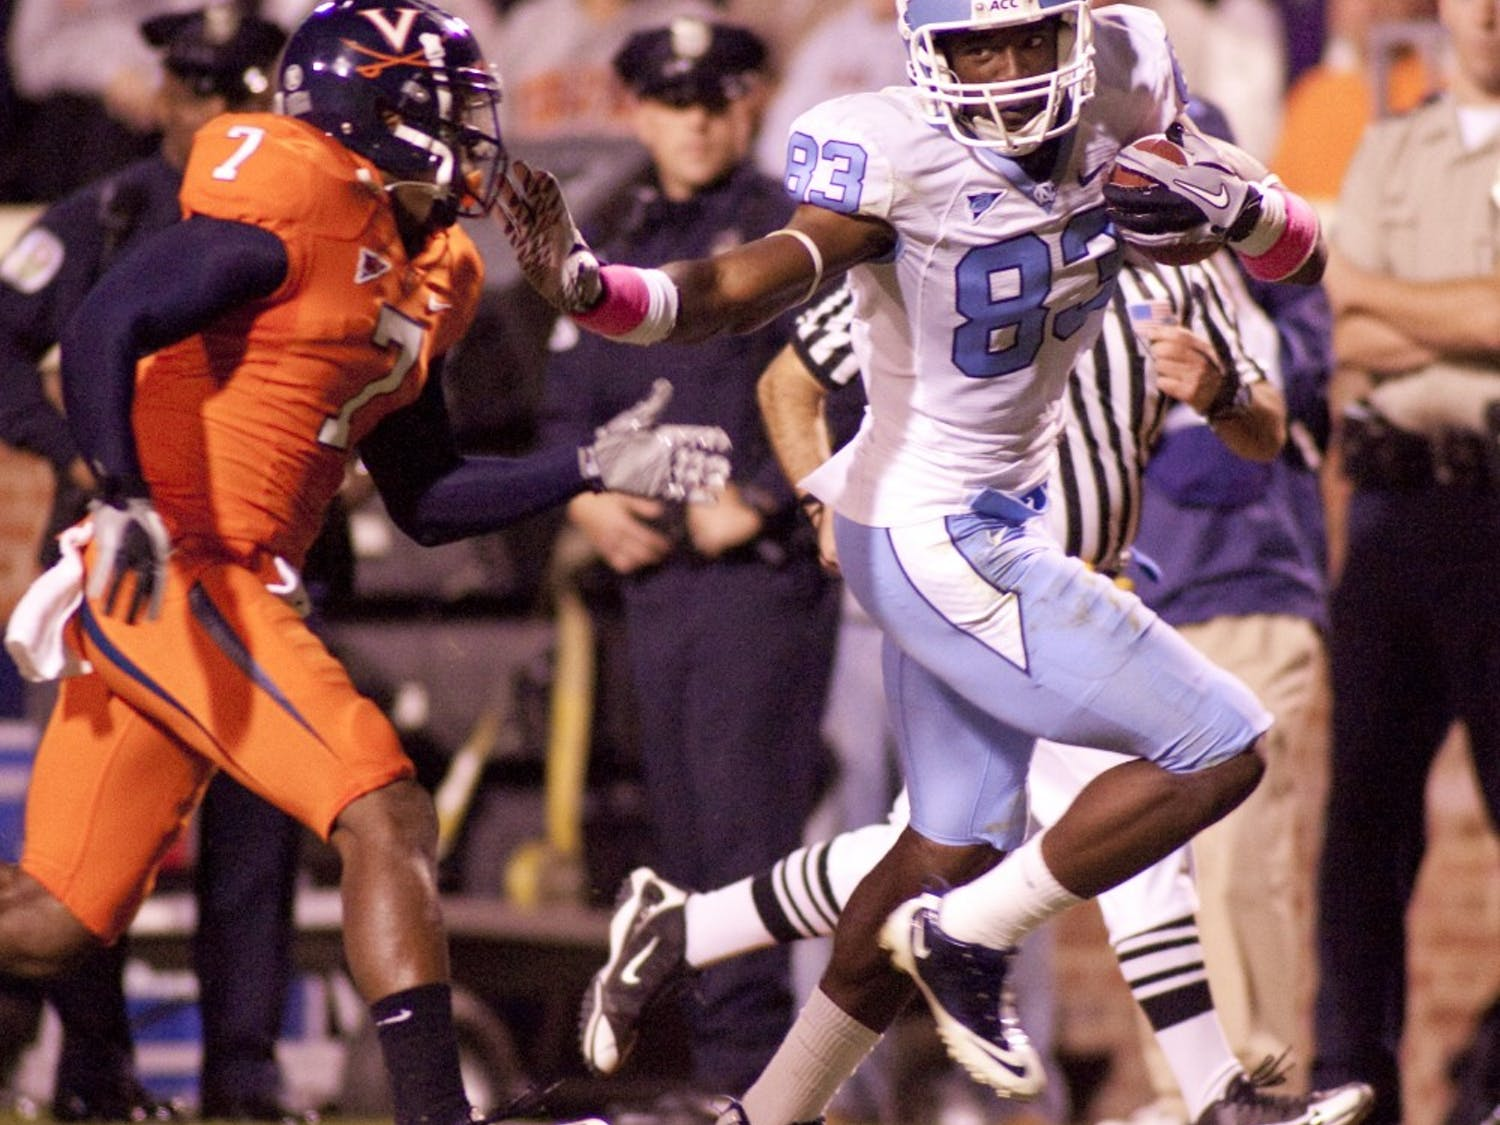 Junior wide receiver Dwight Jones has six receptions on 188 yards through the first half. Jones has scored two of UNC's three touchdowns.